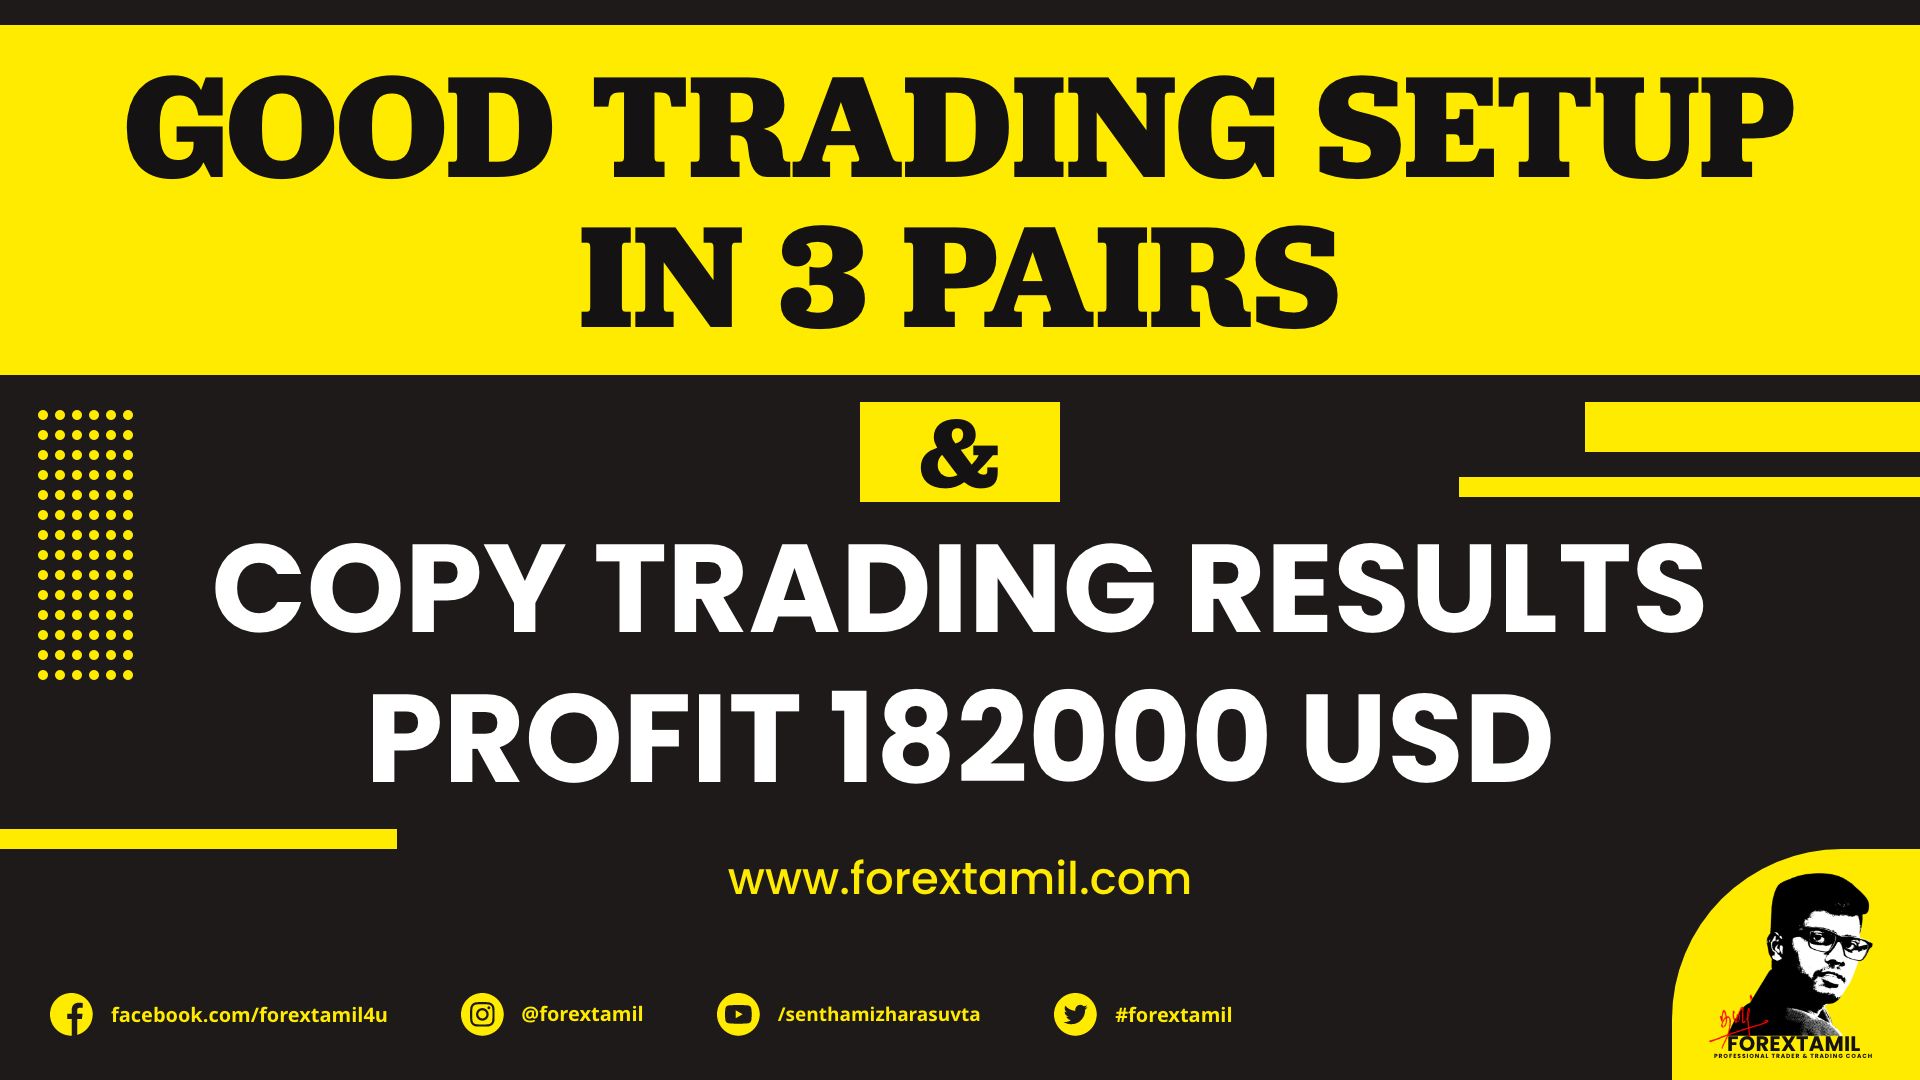 Good Trading Setup In 3 Pairs And Copy Trading Results Profit 182000 USD